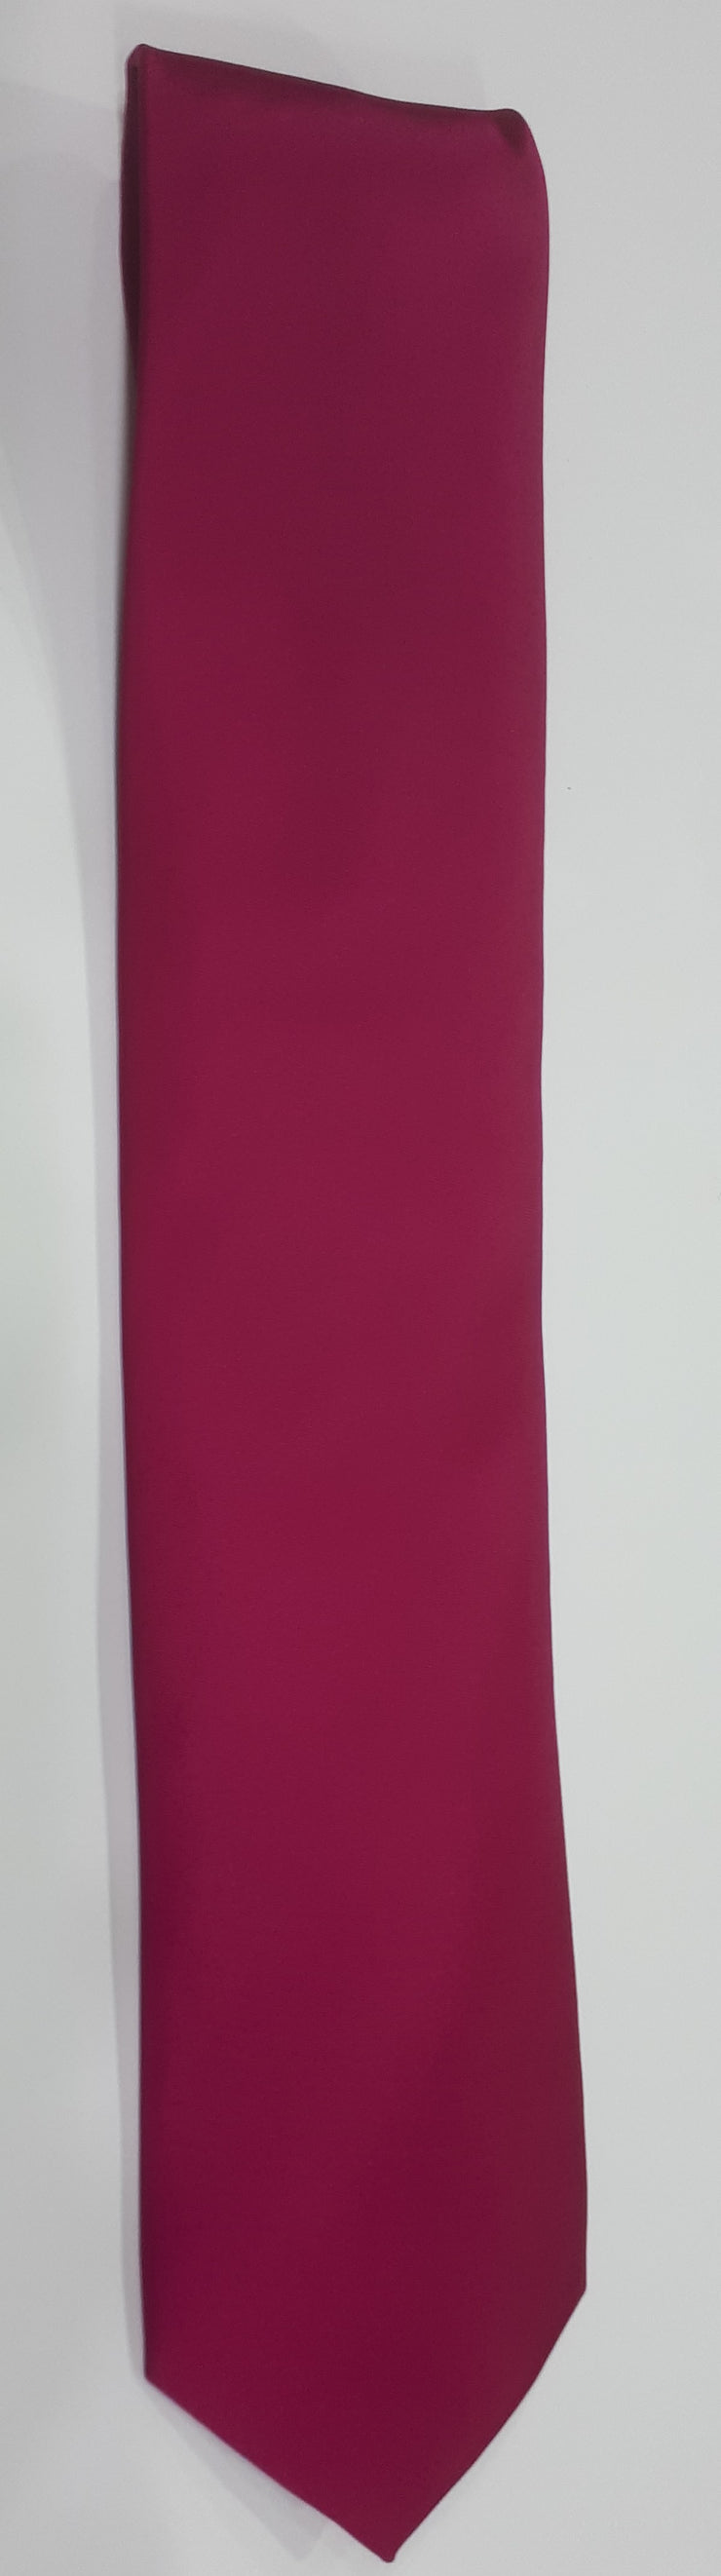 FORMAL SATIN TIE FUSCHIA